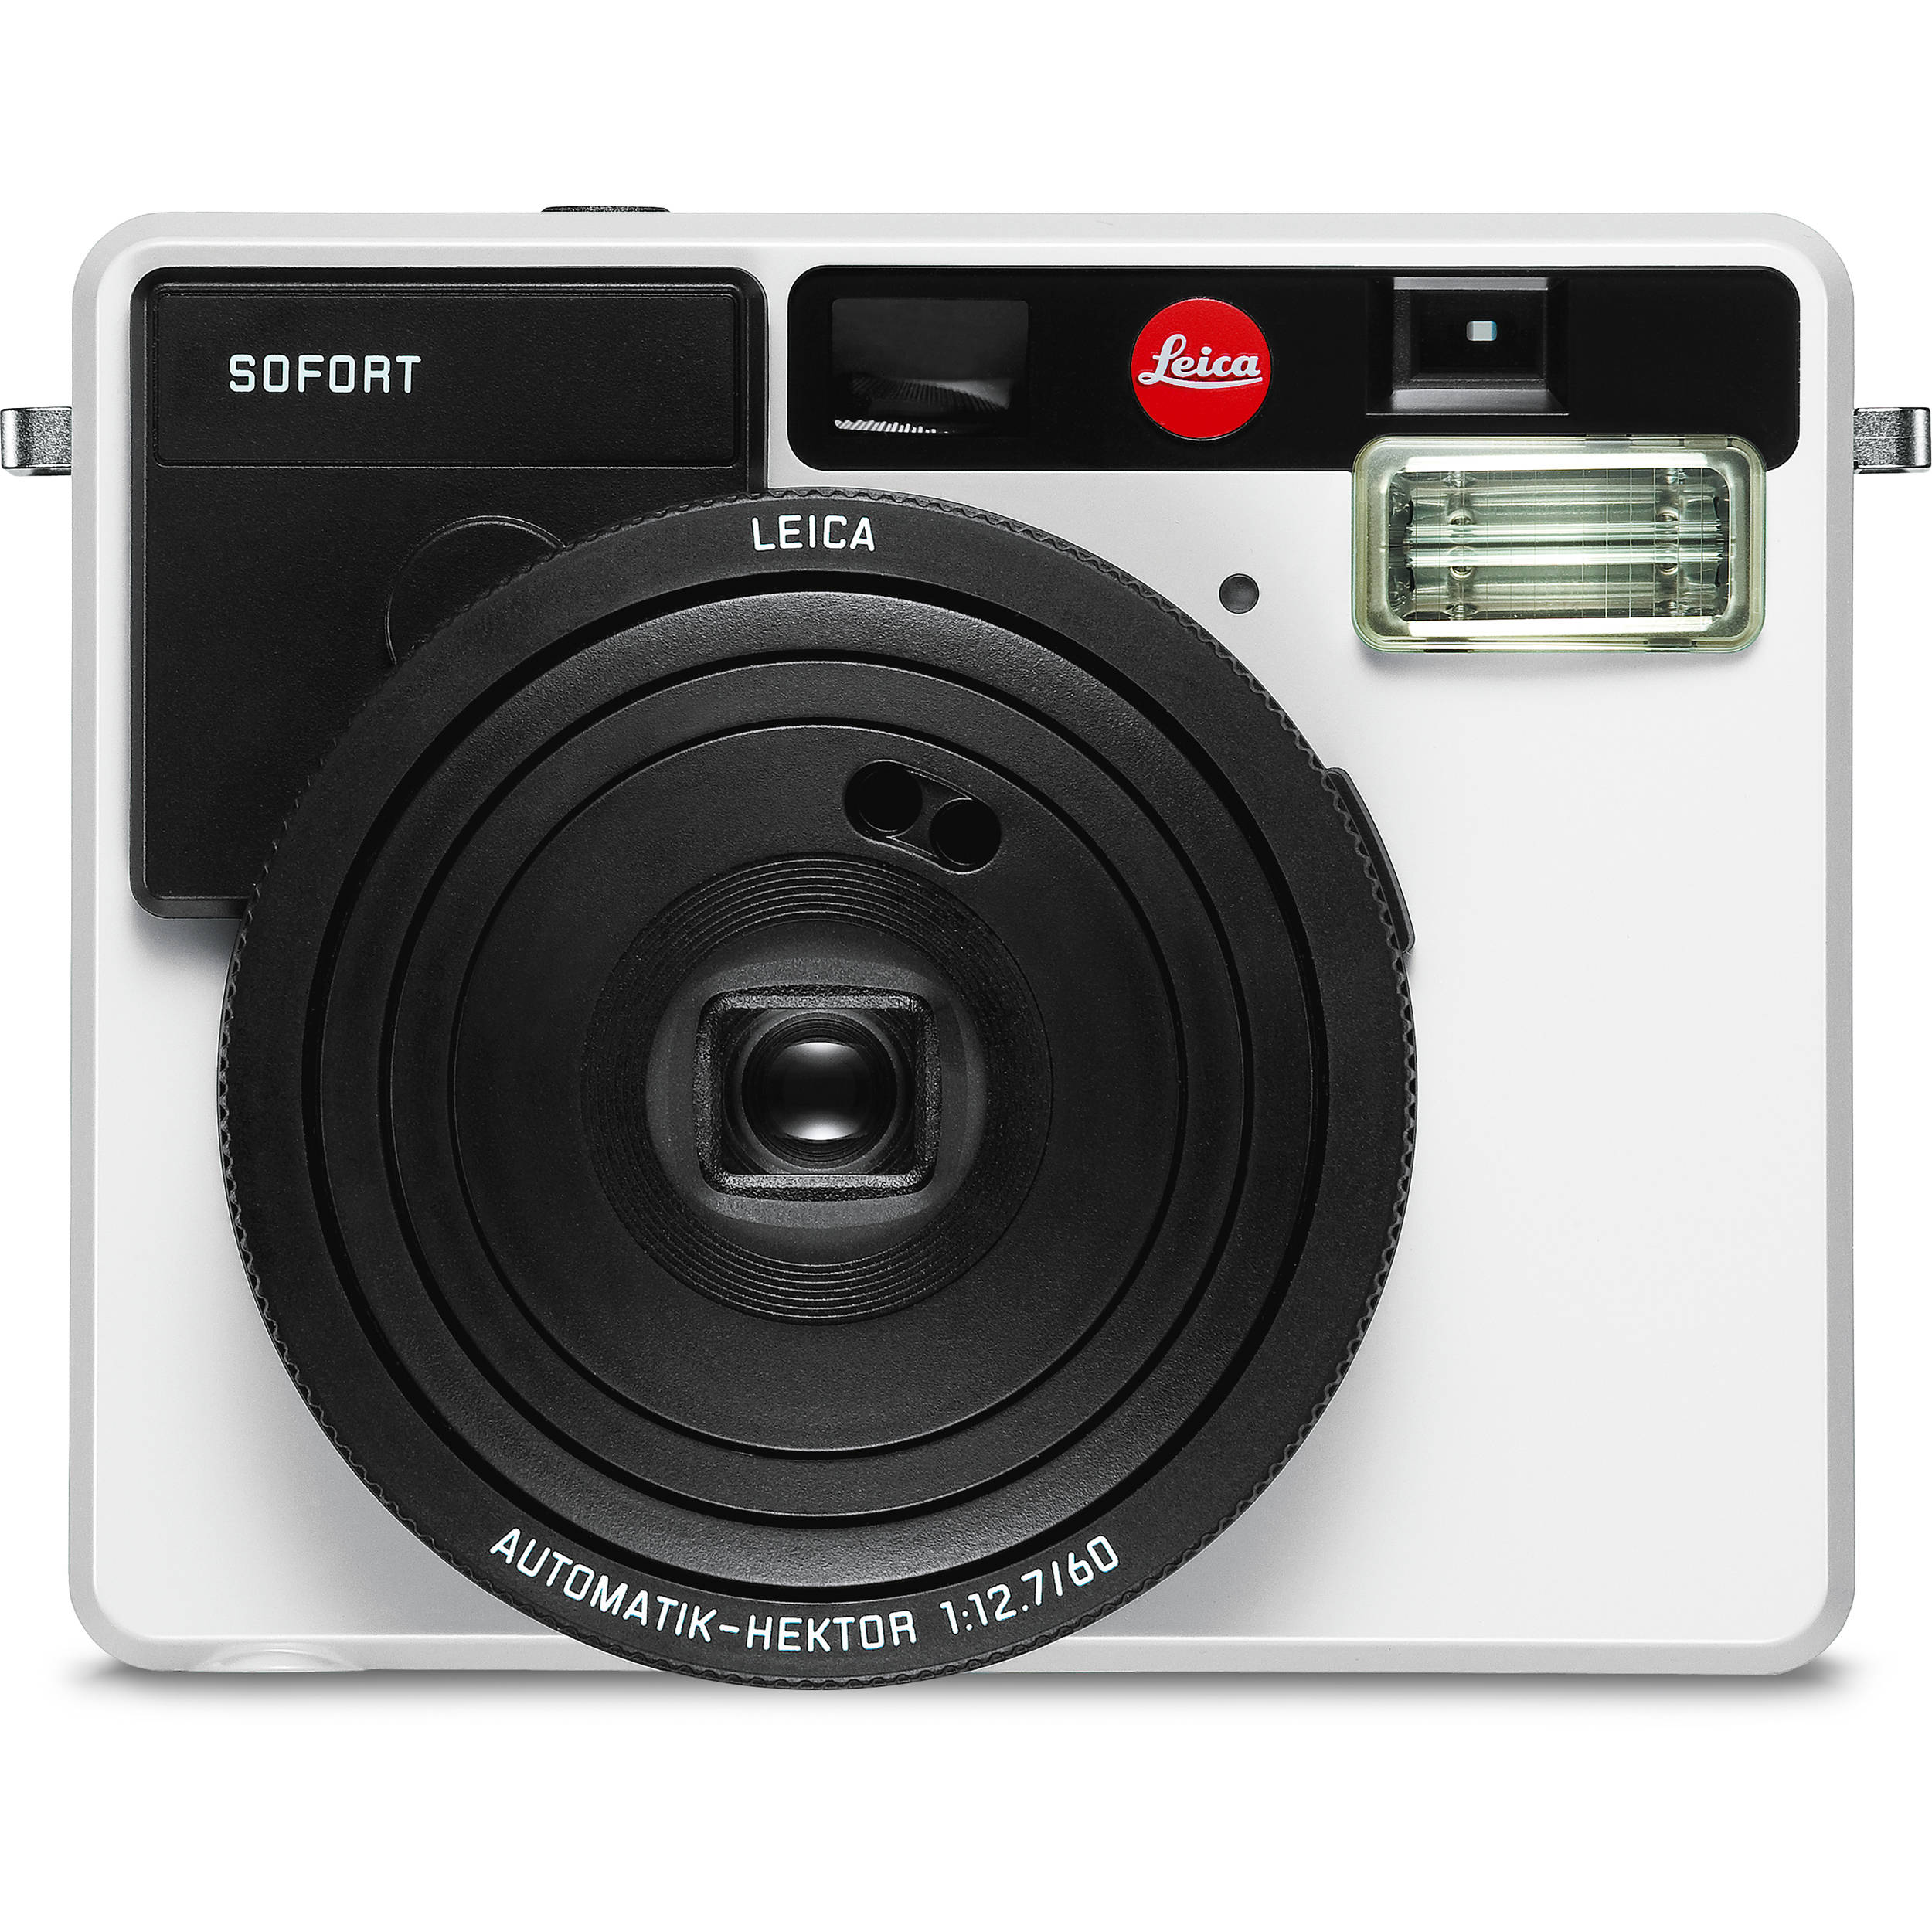 Leica Sofort Instant Film Camera (White) 19100 B&H Photo Video